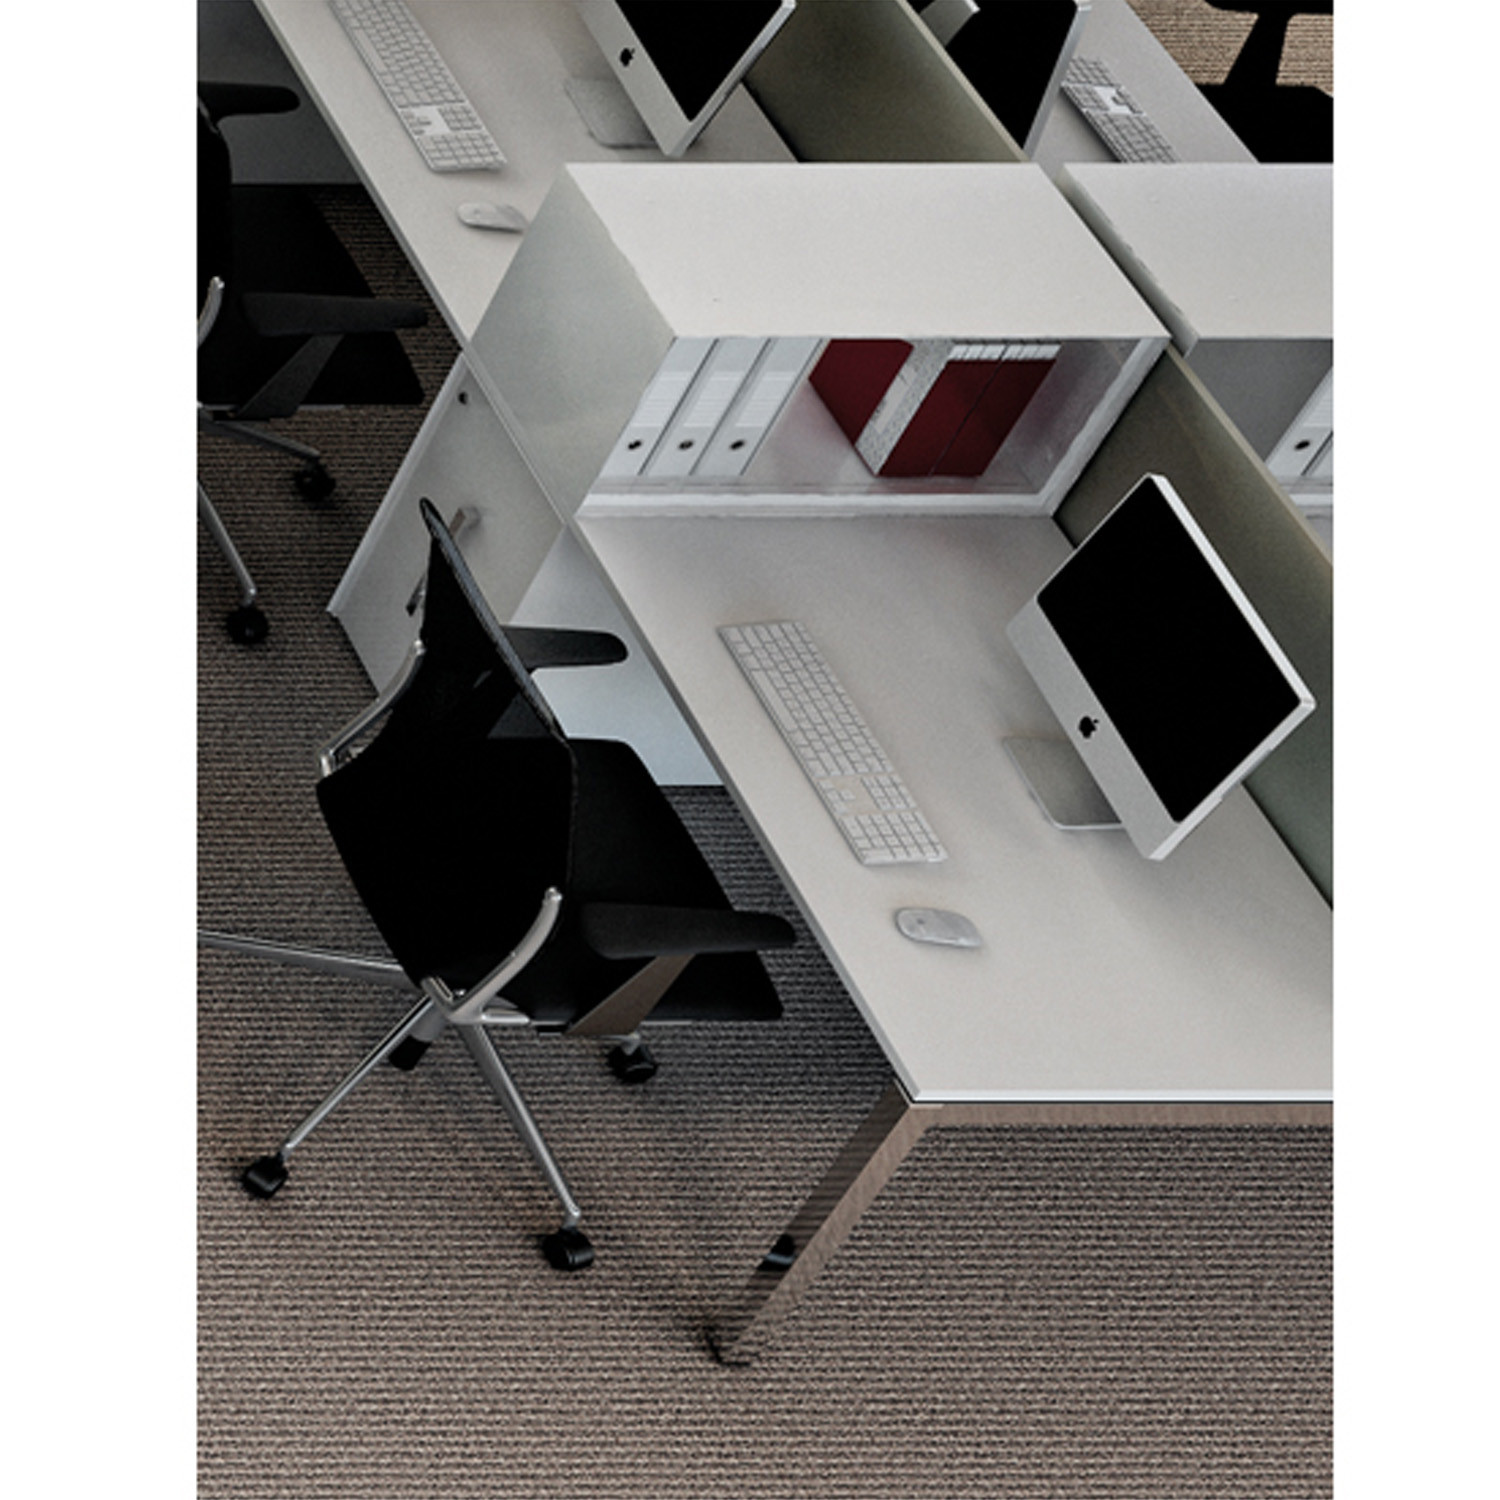 Vertical File Desktop Open Storage